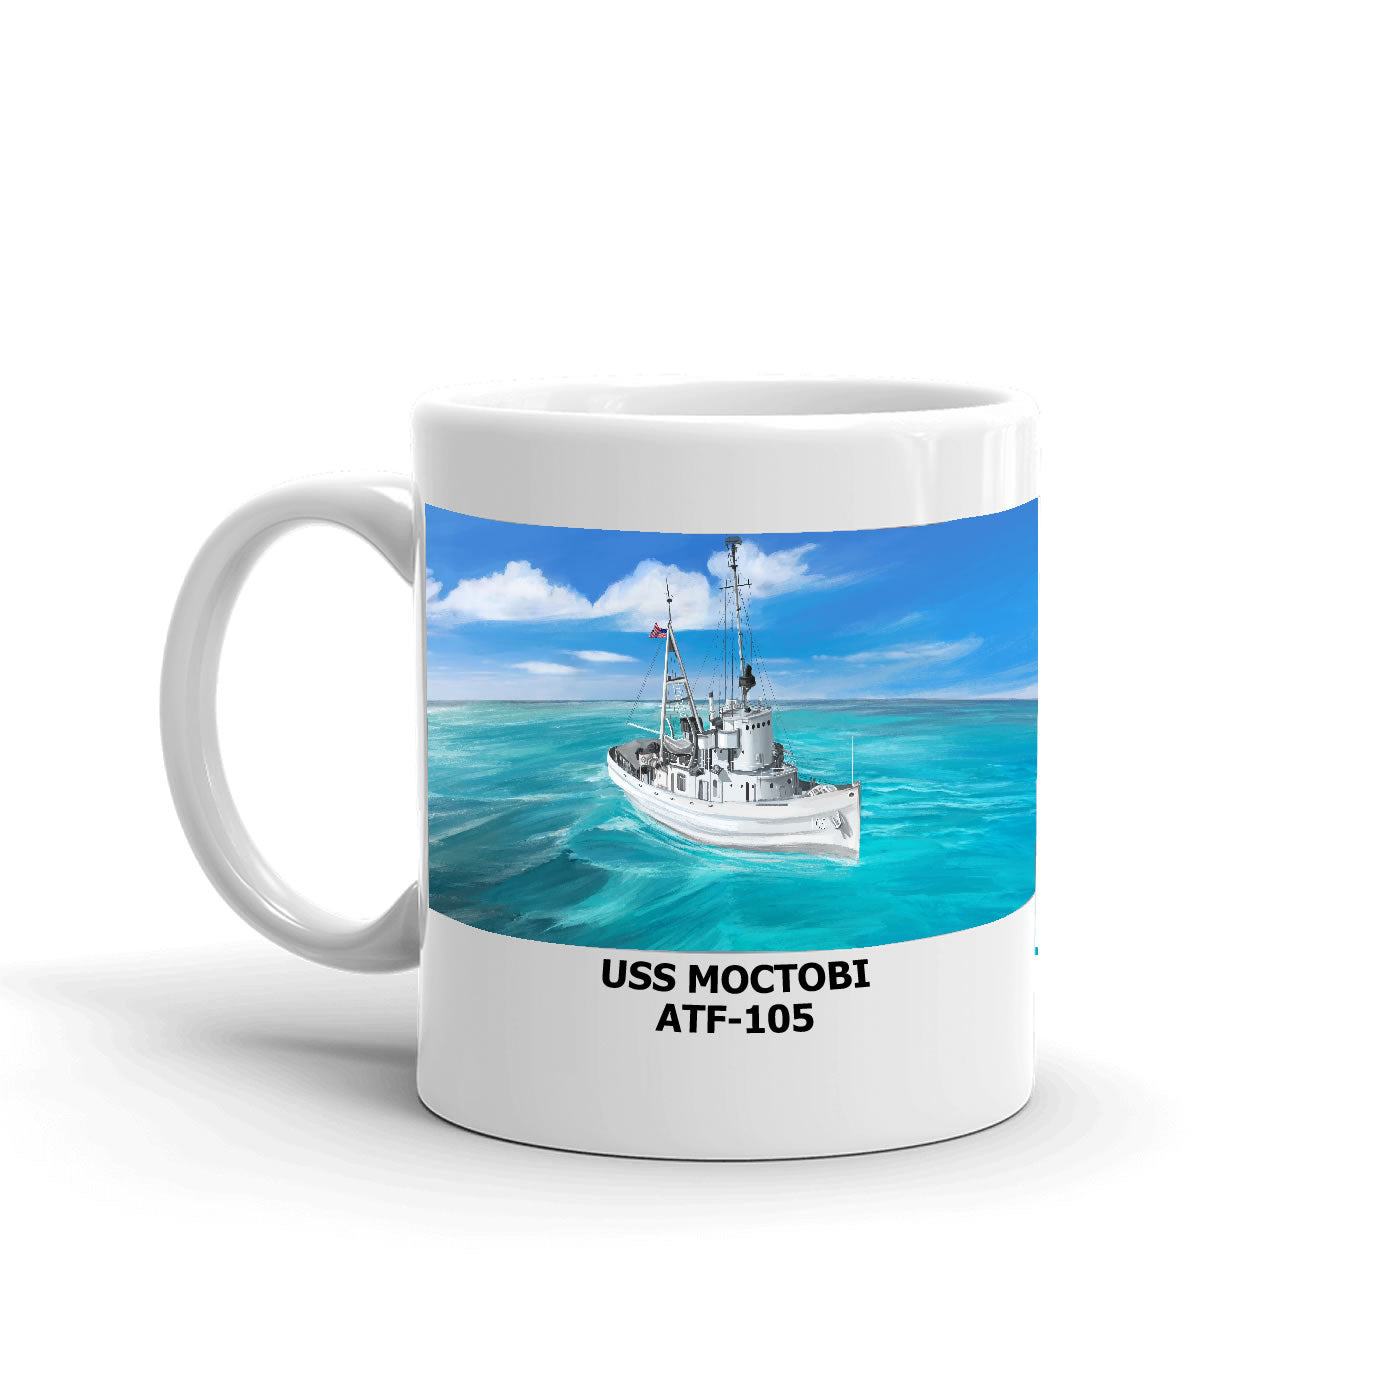 USS Moctobi ATF-105 Coffee Cup Mug Left Handle